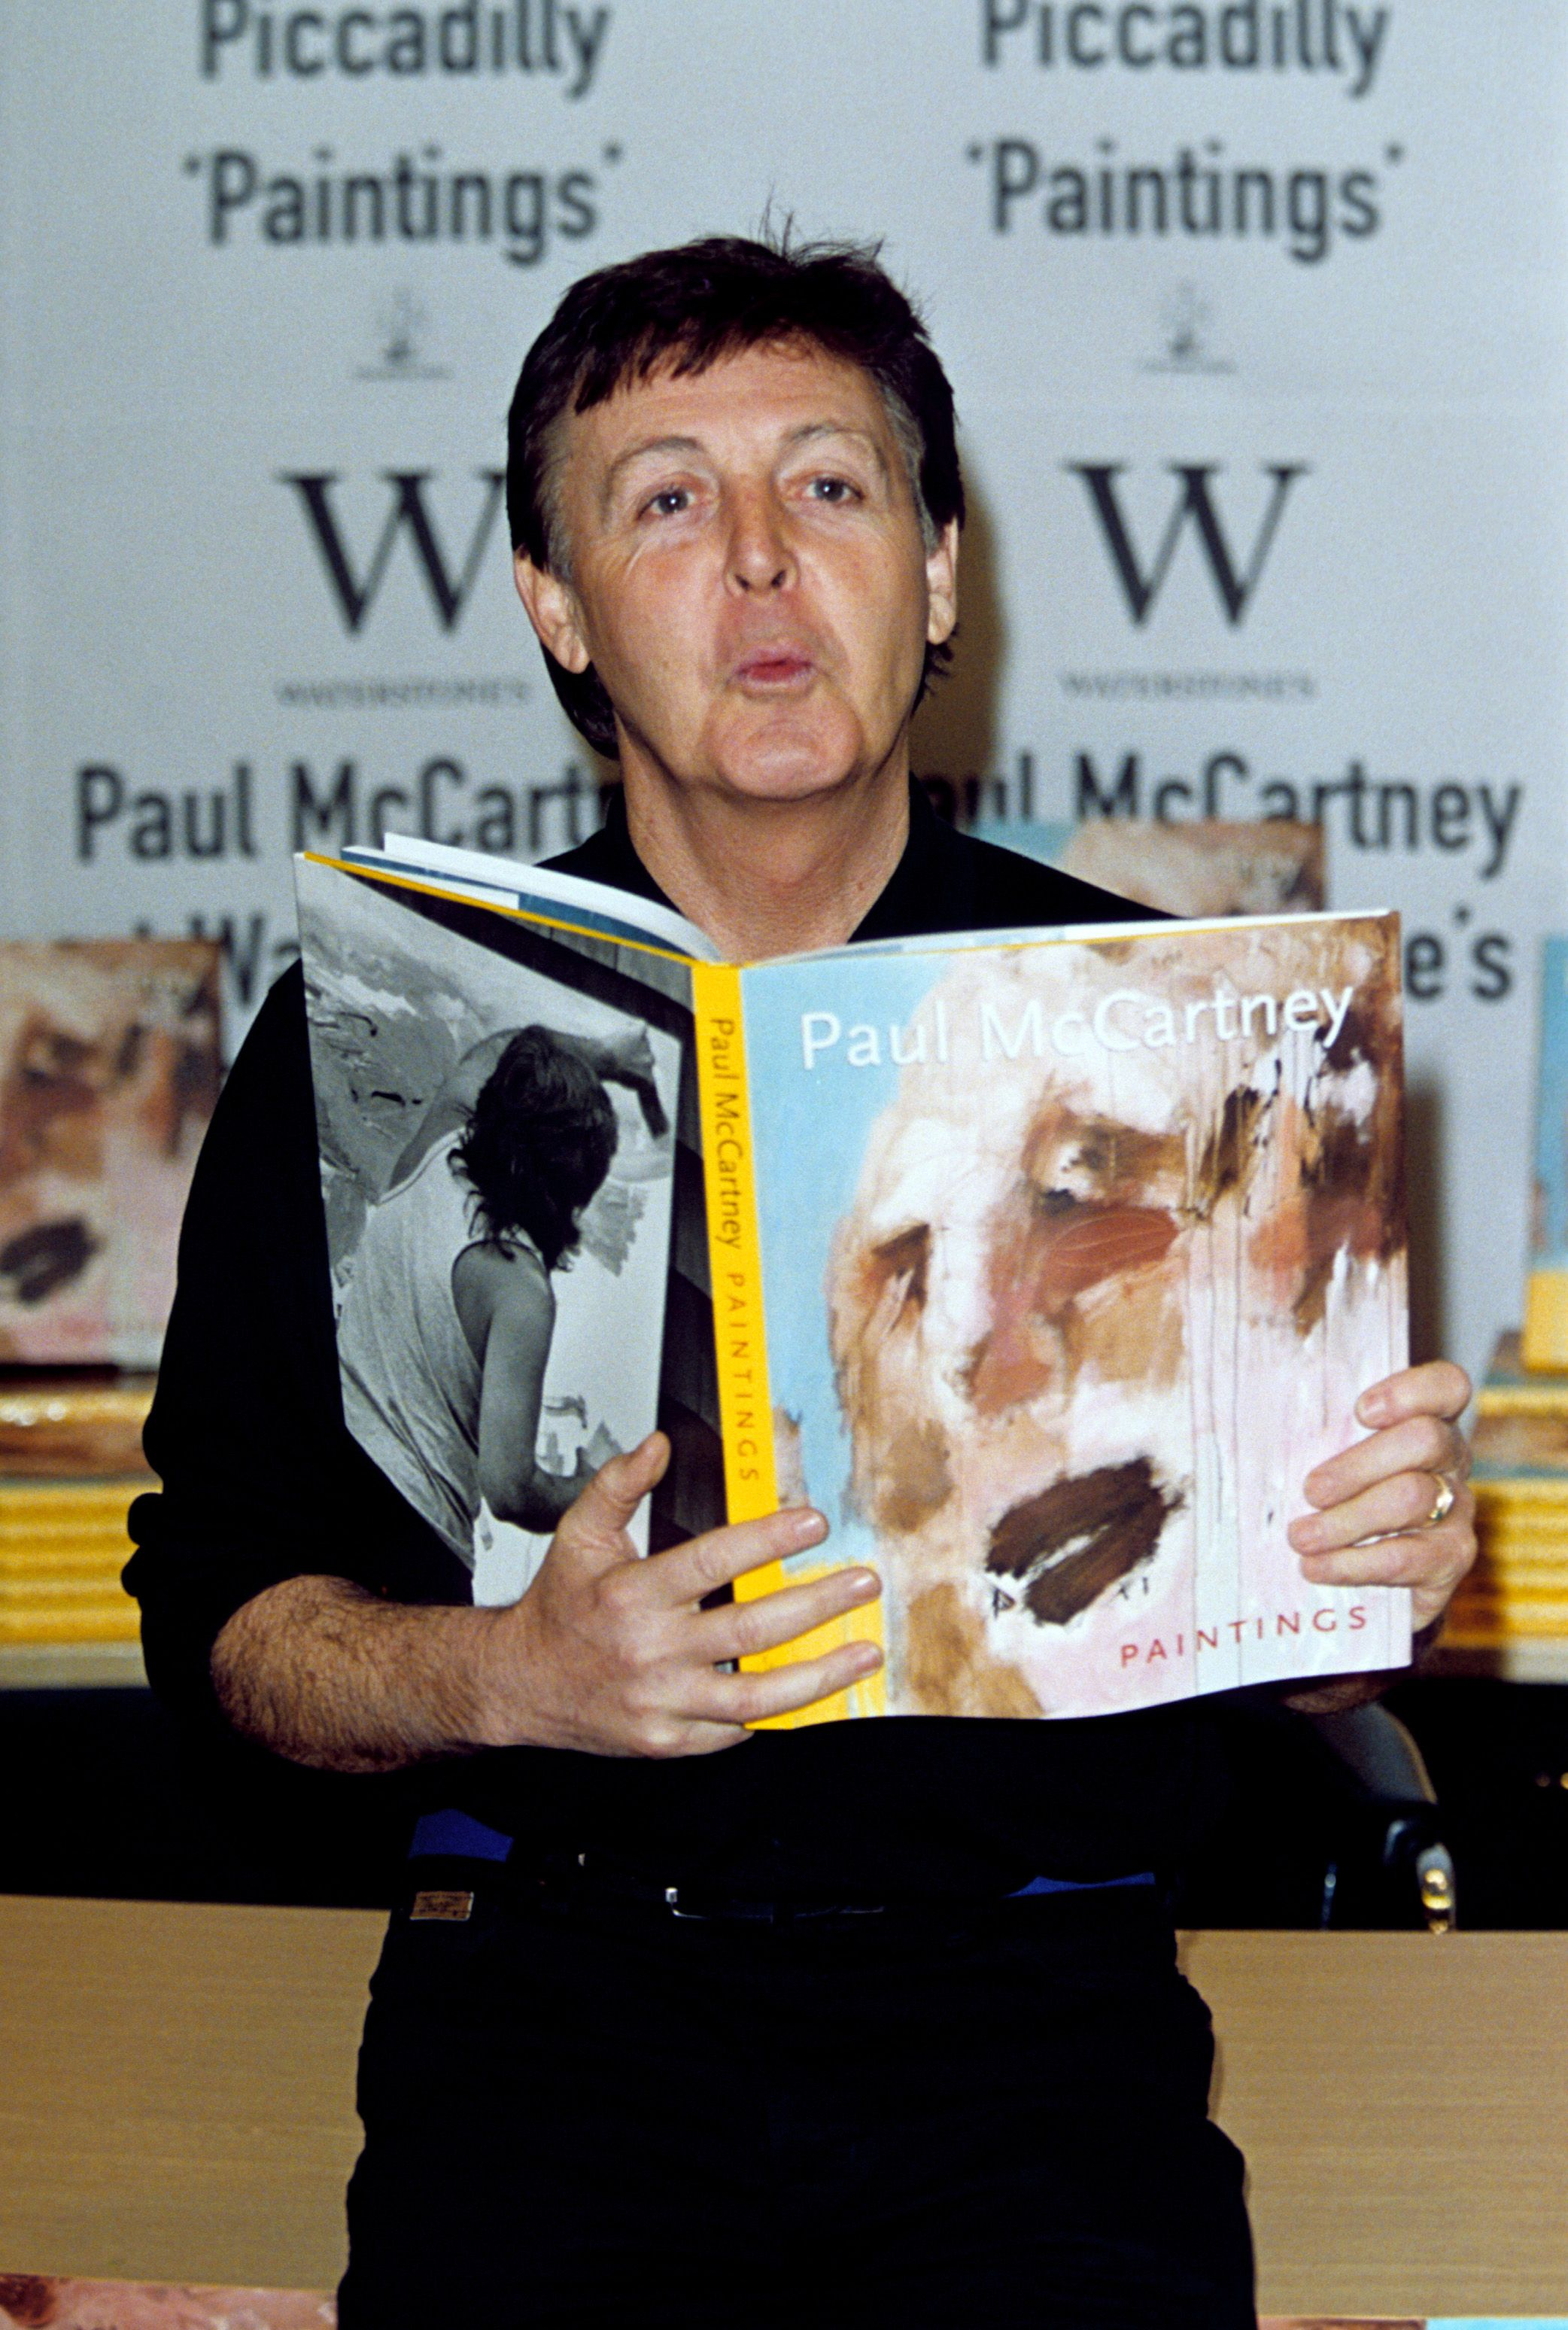 Paul McCartney Published A Collection Of His Artwork Entitled Paintings In 2000